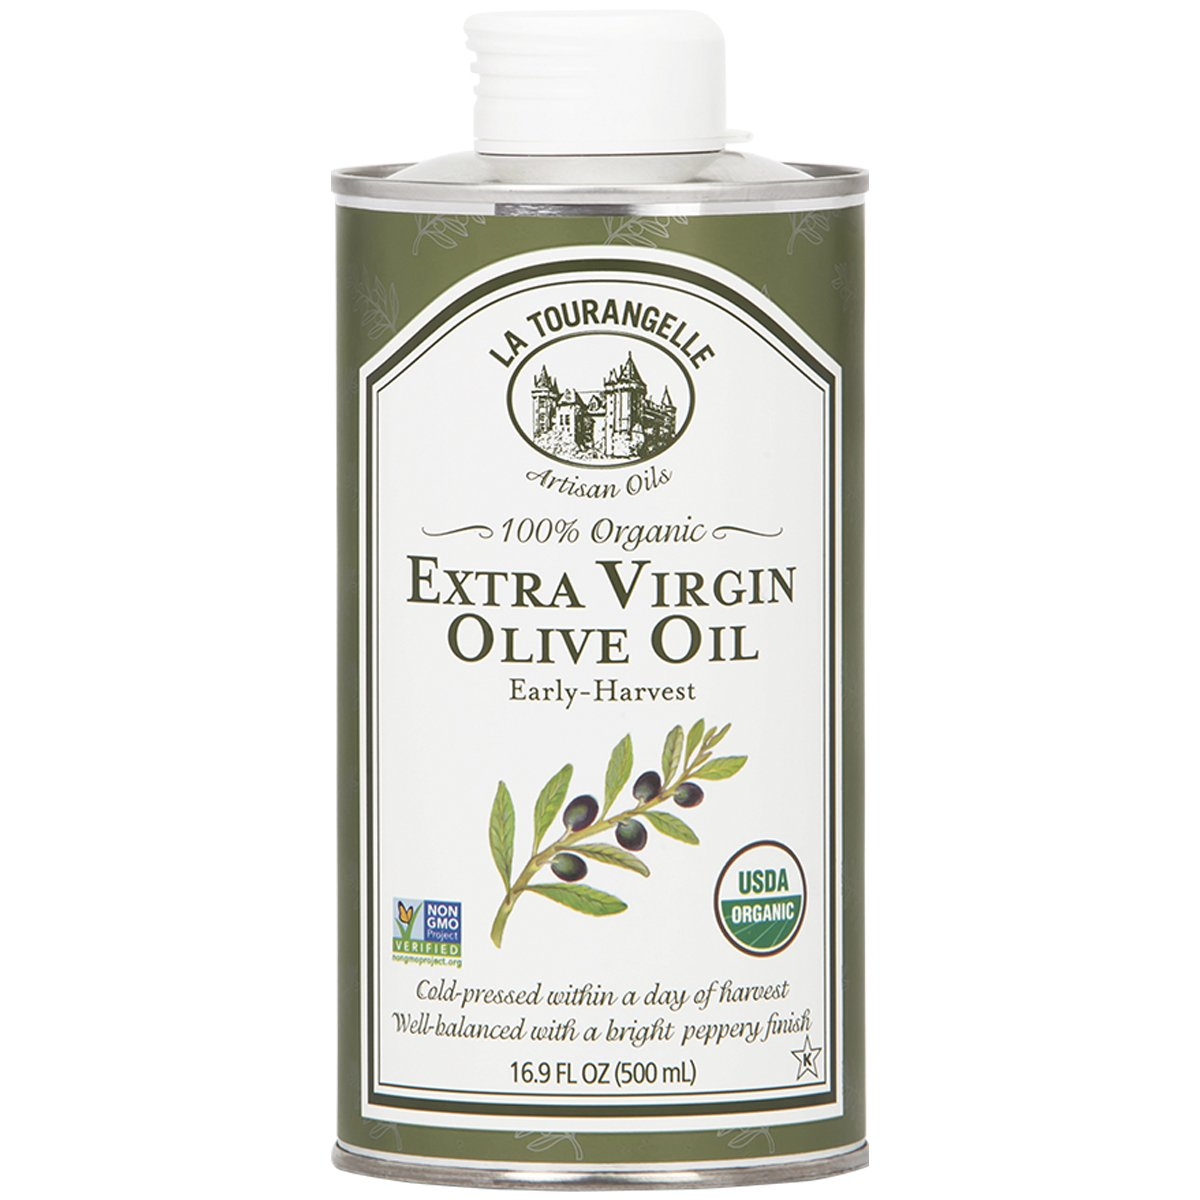 La Tourangelle, Organic Extra Virgin Olive Oil, 16.9 Fluid Ounce